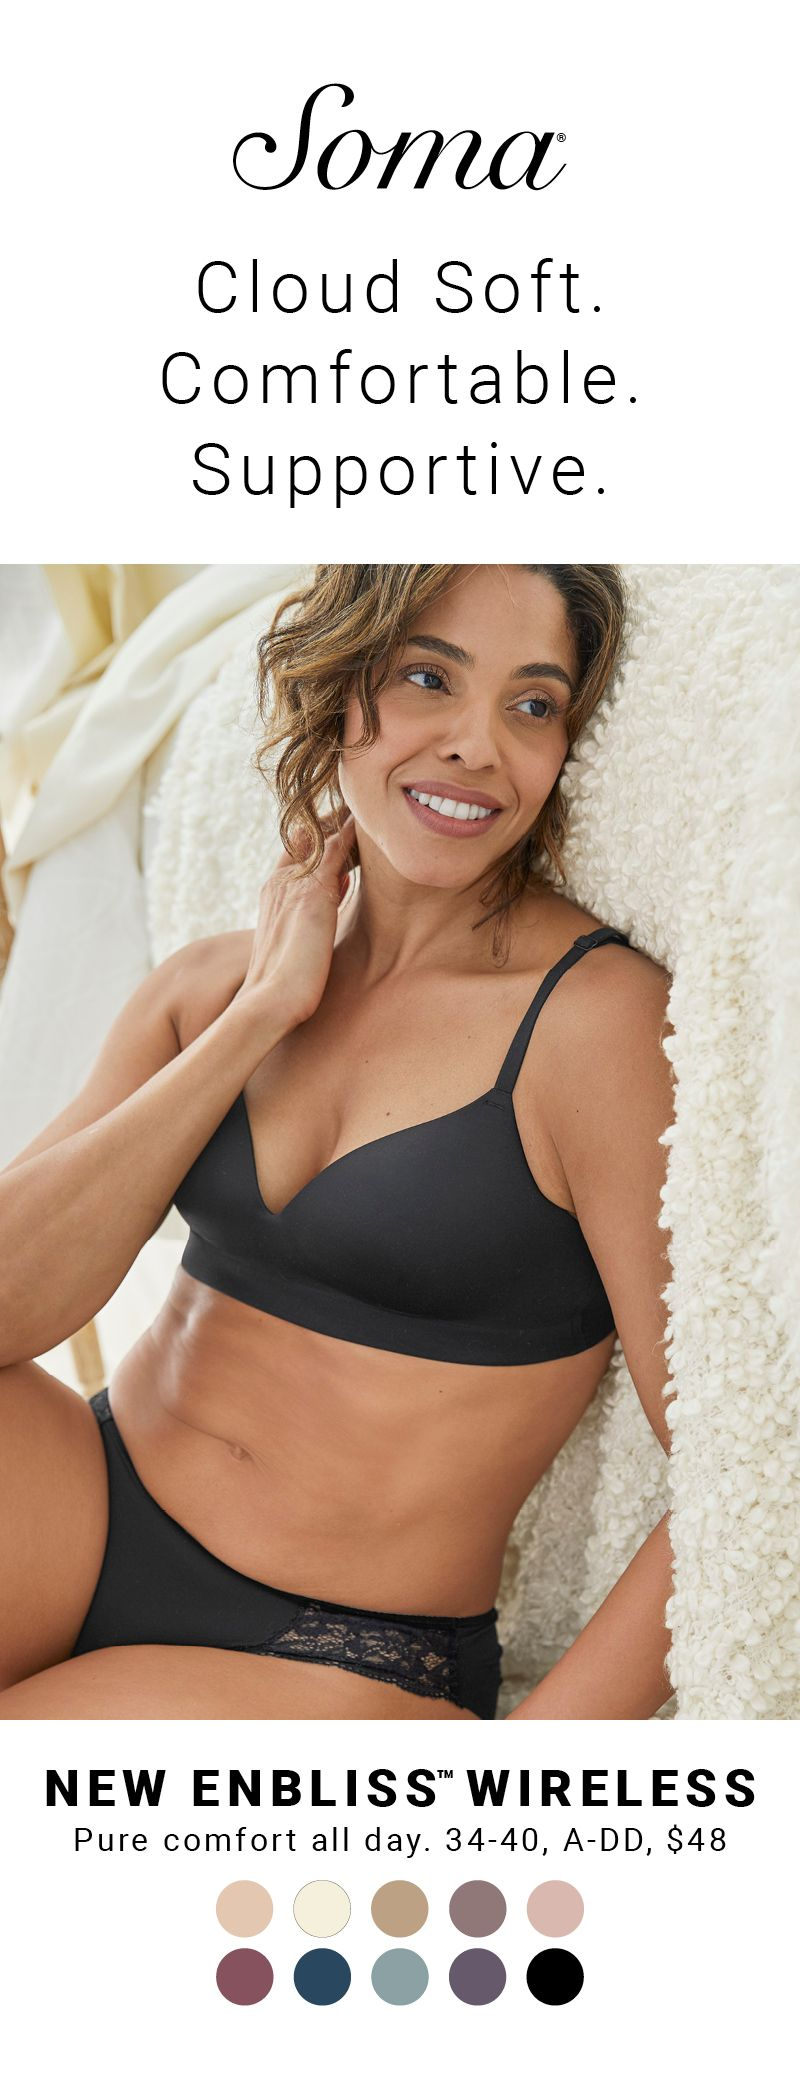 19b4e3f6d8 Cloud soft comfort and support coexist in one beautiful wireless bra – new  Enbliss. No wires